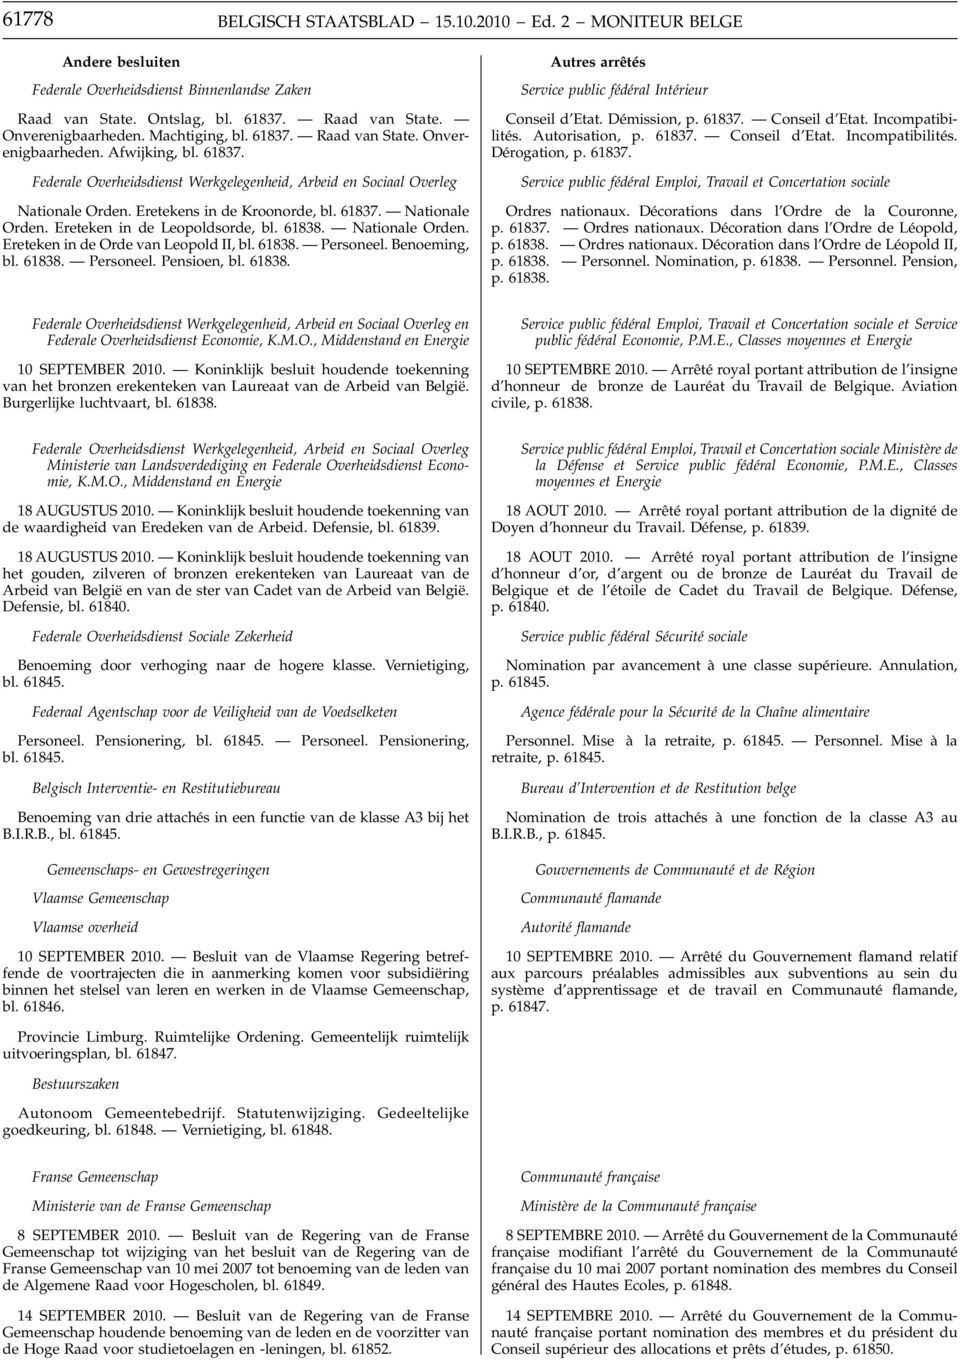 61837. Nationale Orden. Ereteken in de Leopoldsorde, bl. 61838. Nationale Orden. Ereteken in de Orde van Leopold II, bl. 61838. Personeel. Benoeming, bl. 61838. Personeel. Pensioen, bl. 61838. Autres arrêtés Service public fédéral Intérieur Conseil d Etat.